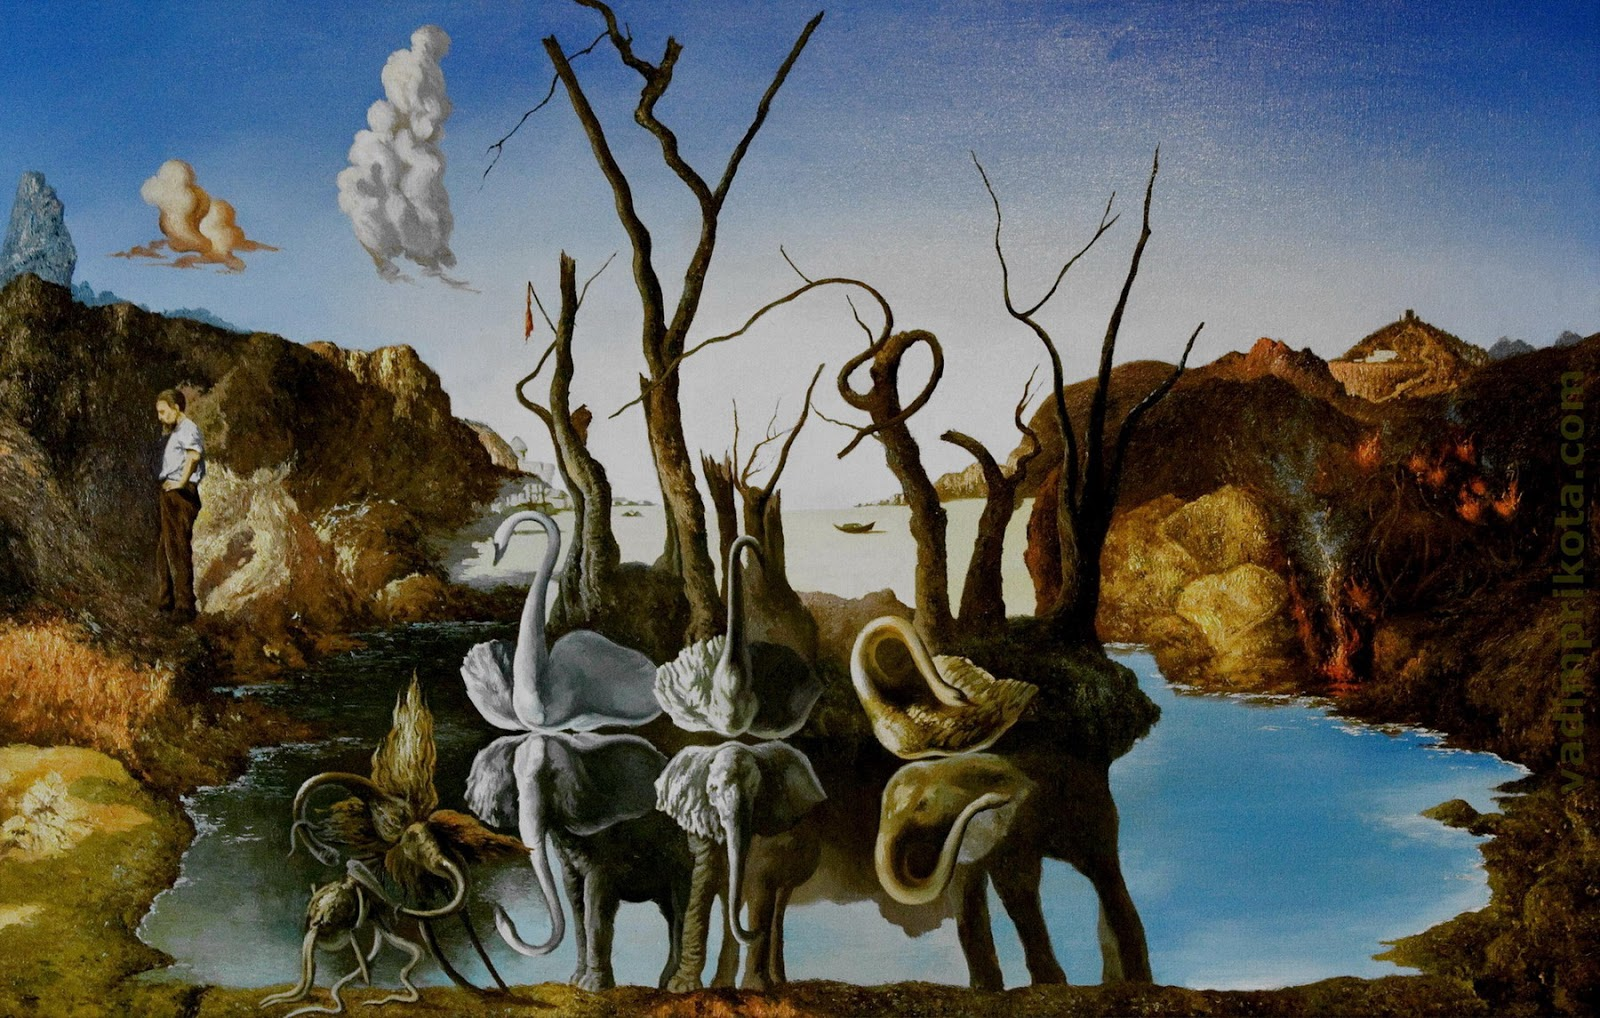 [Jeu] Association d'images - Page 4 Dali_Swans_Reflecting_Elephants